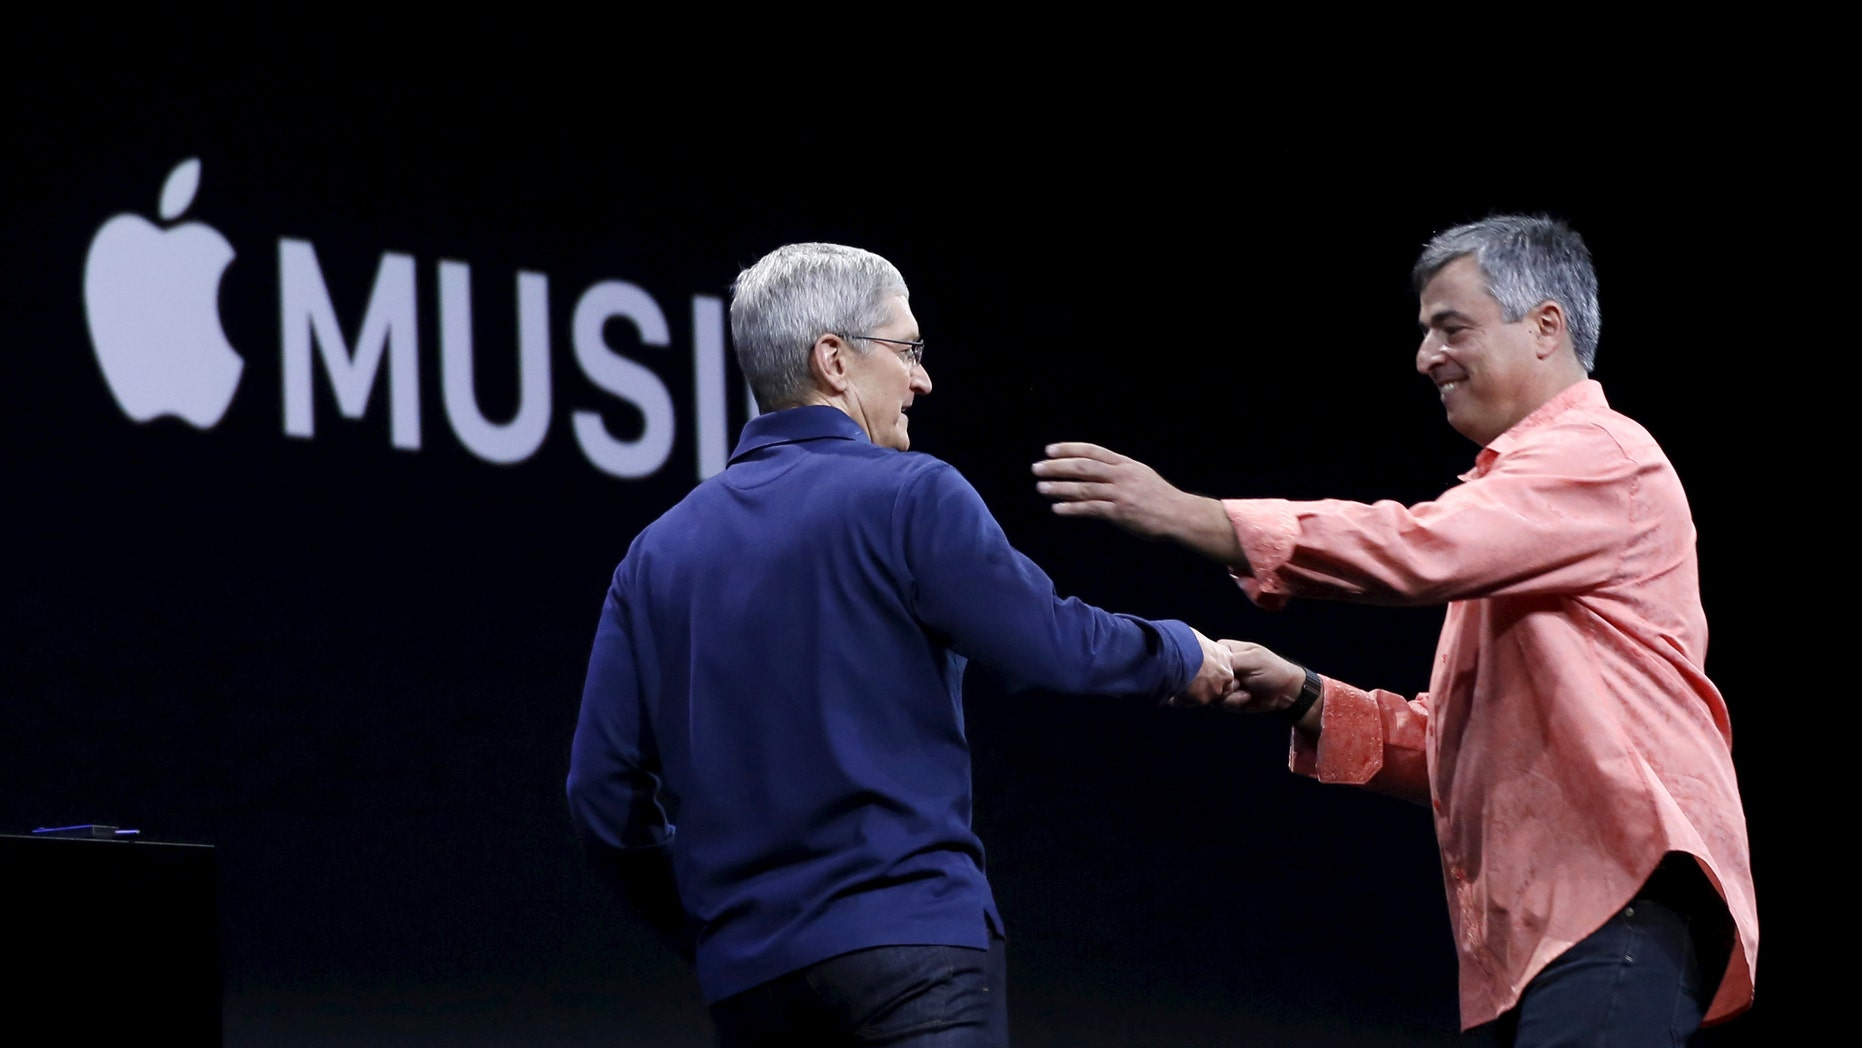 File photo: Apple CEO Tim Cook (L) greets senior vice president of internet services and software Eddy Cue during his keynote address at the Worldwide Developers Conference in San Francisco, California June 8, 2015.